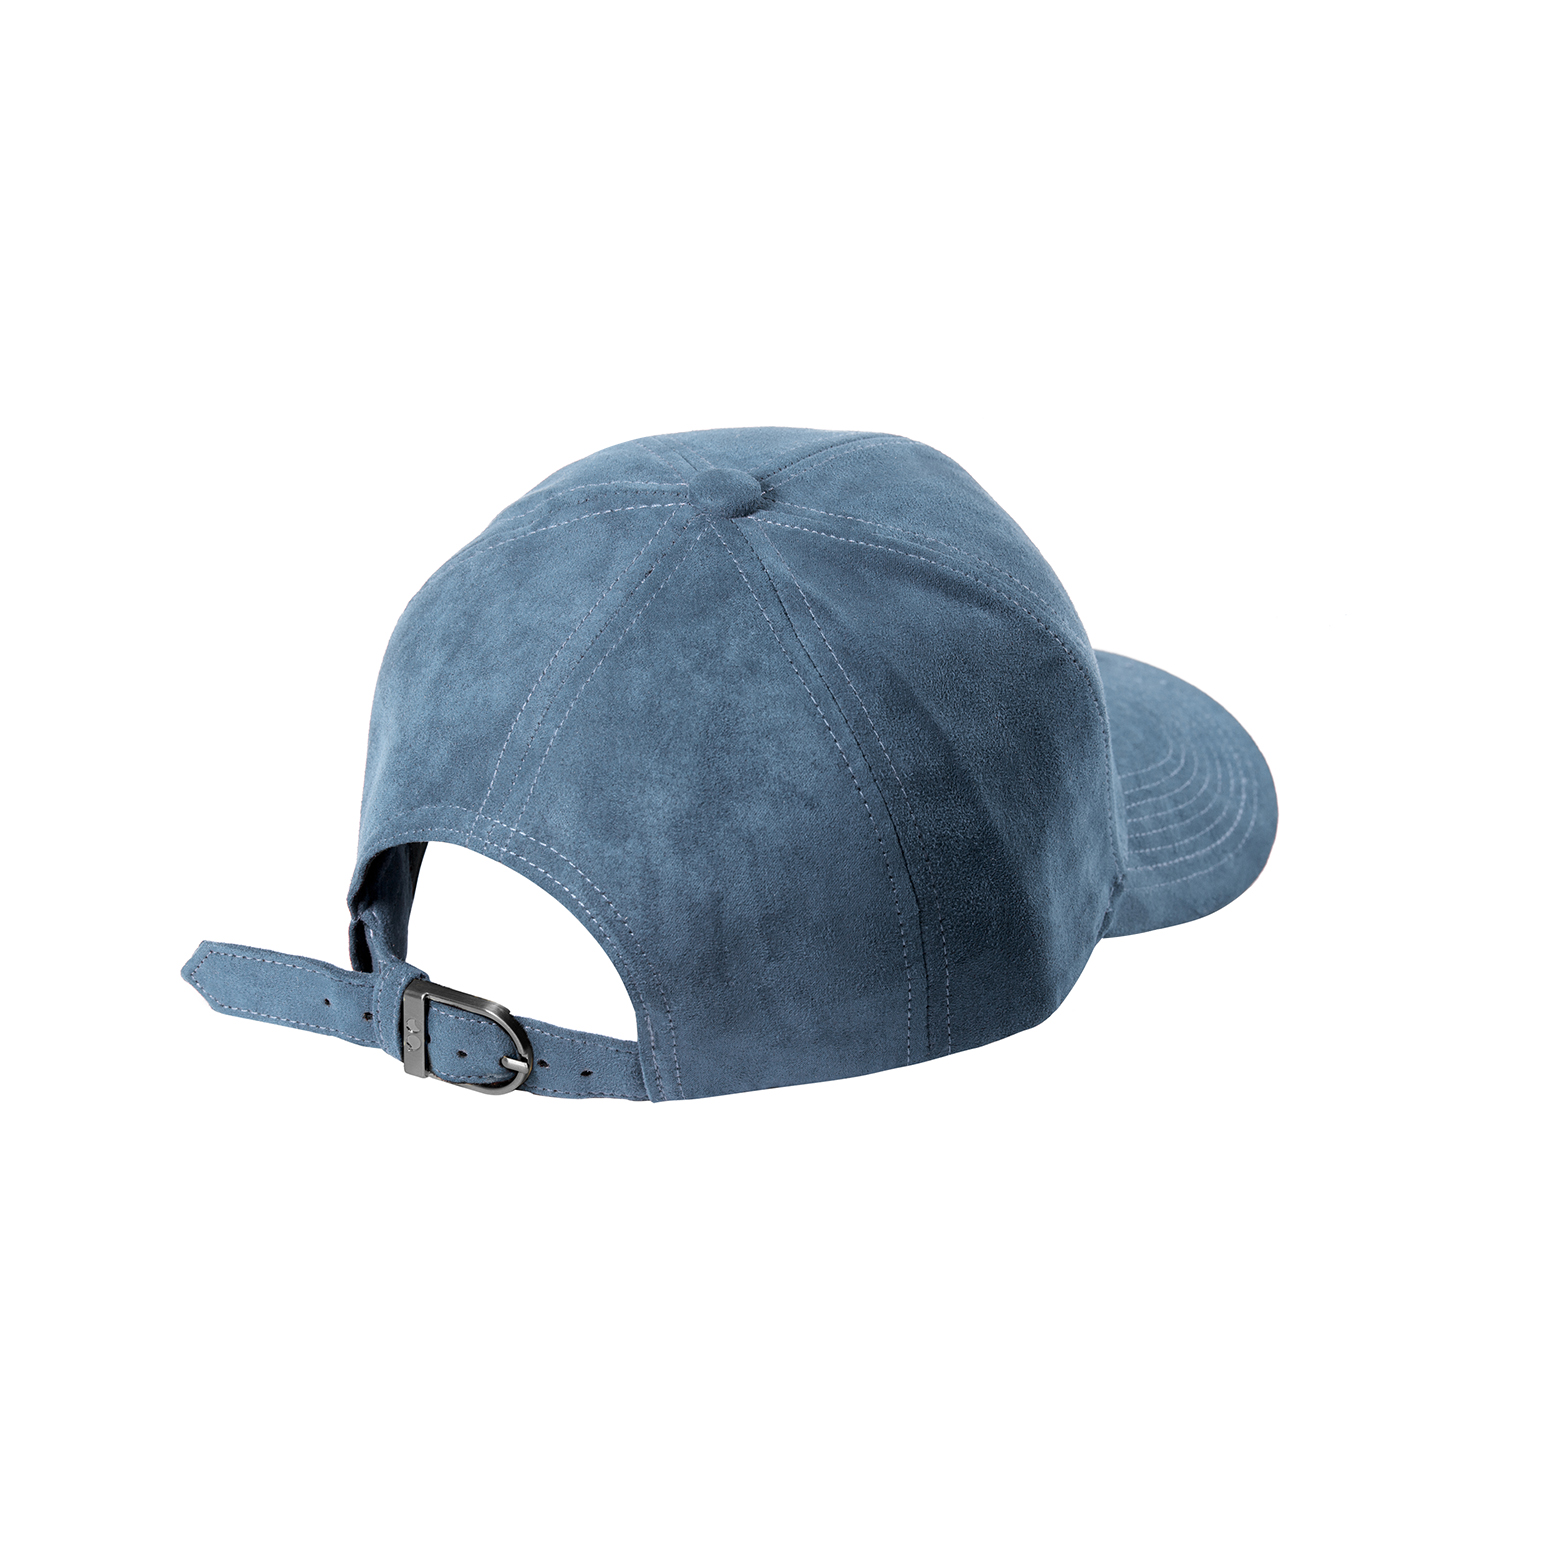 BASEBALL CAP SKY BLUE SUEDE SILVER BACK SIDE